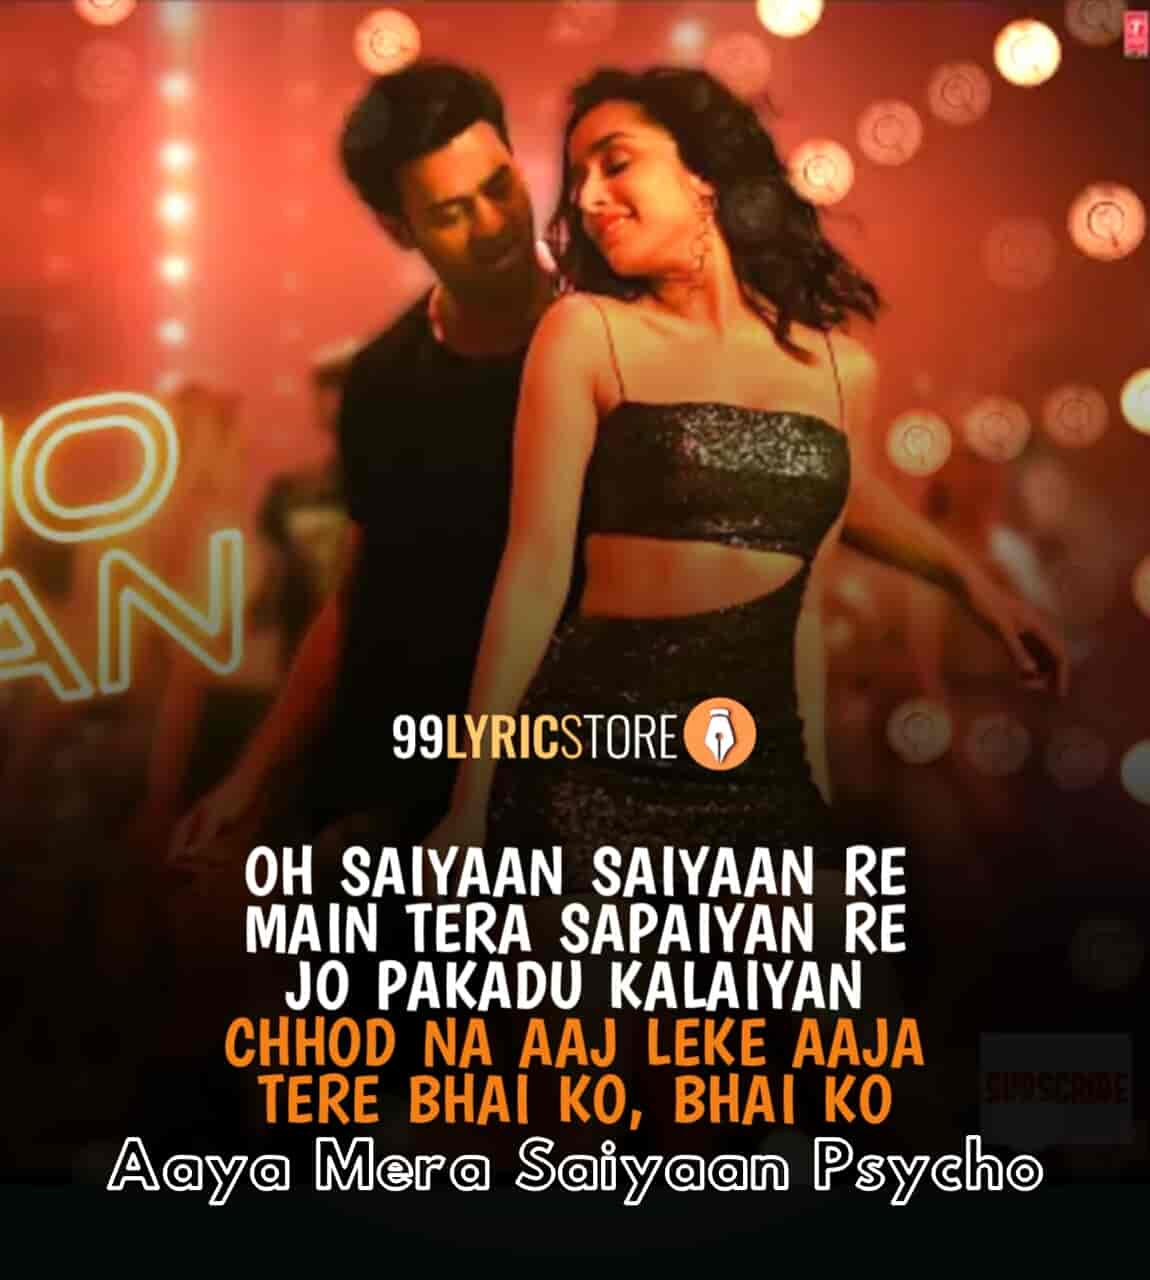 Psycho Saiyaan lyrics sung by Dhvani Bhanushali and Sachet Tondon